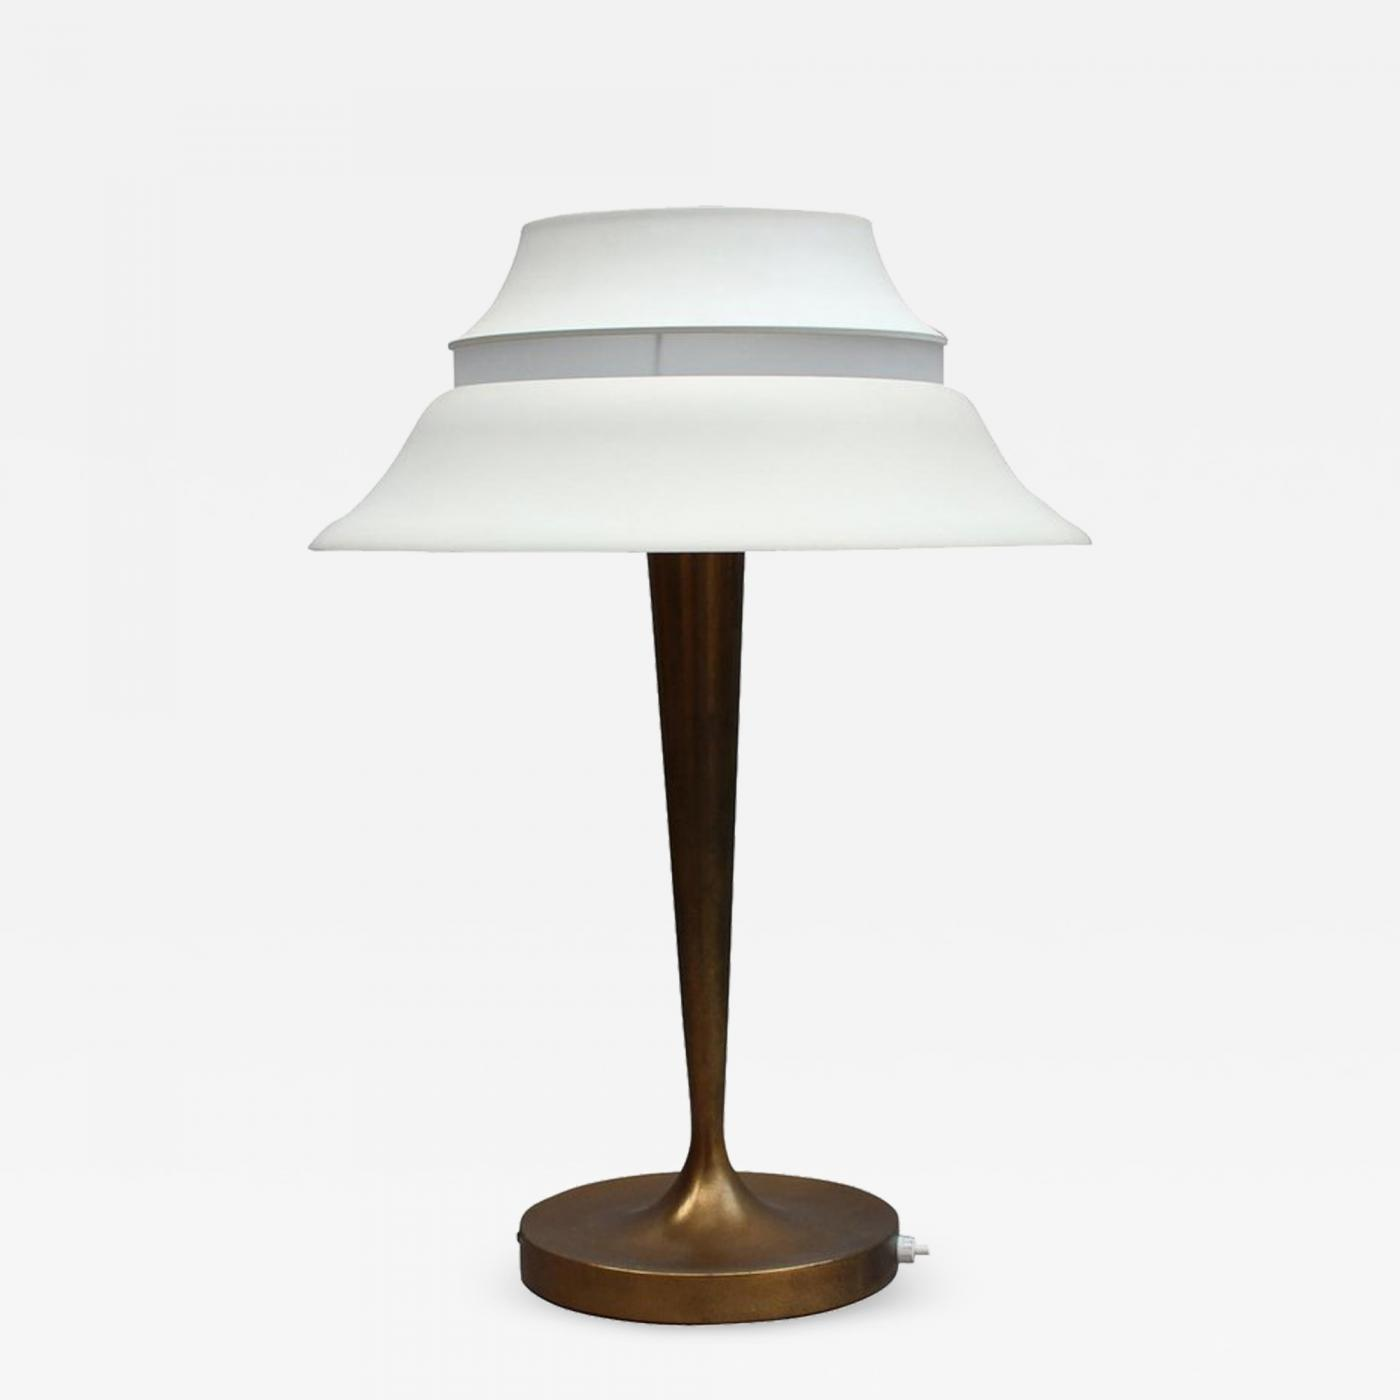 Art Deco Style & Light Jean Perzel A Fine French Art Deco Table Lamp By Jean Perzel